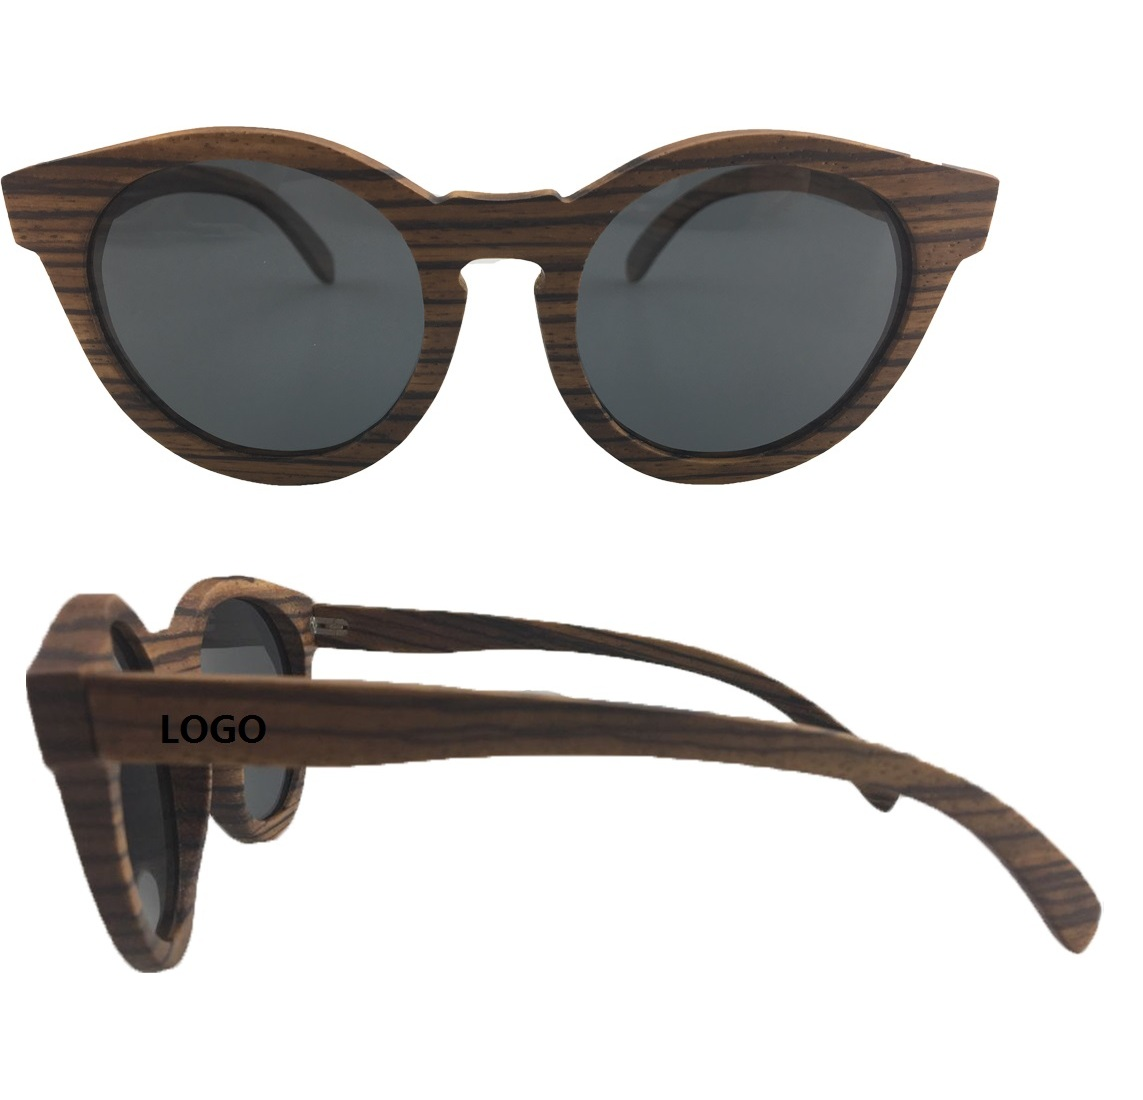 Promotional Handmade Wooden Sunglasses